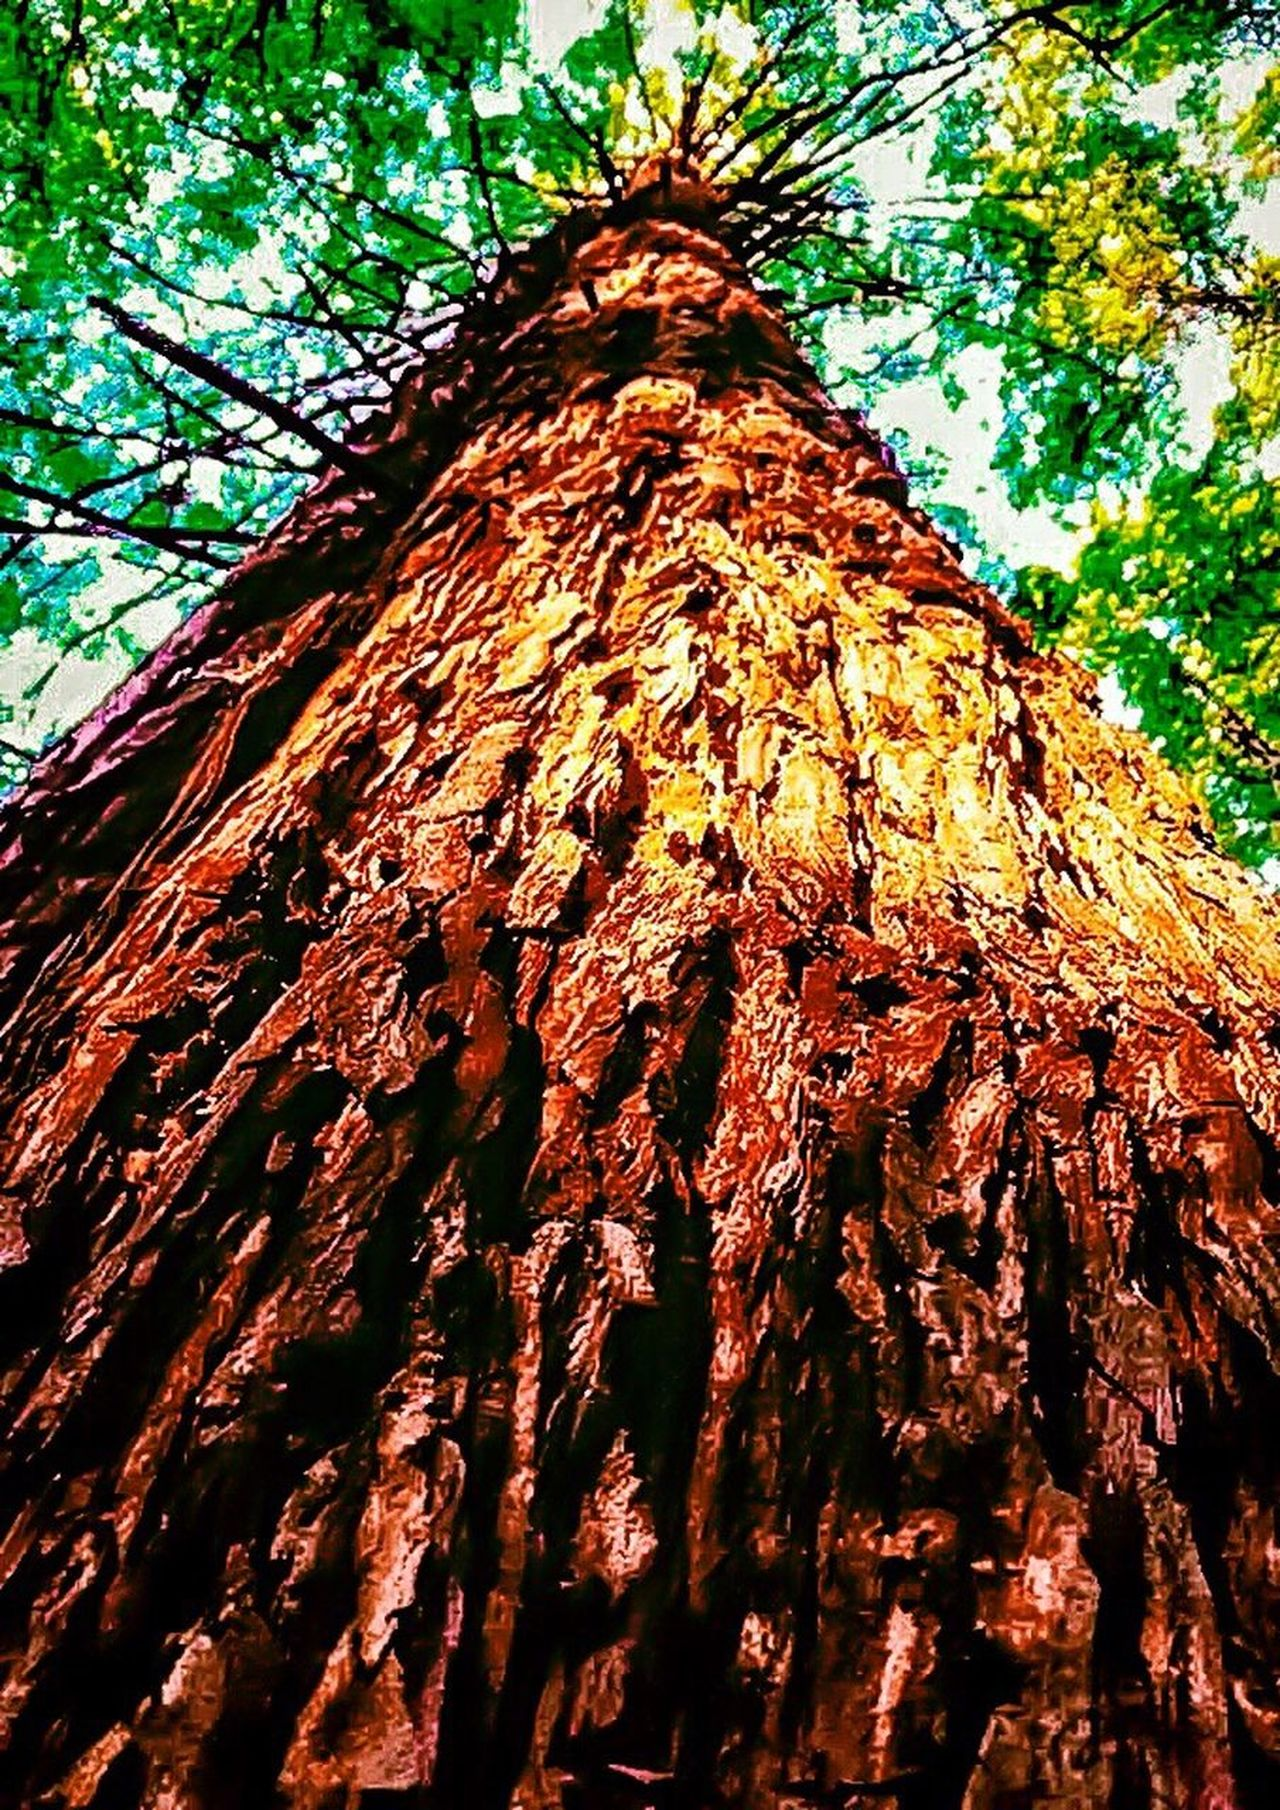 Nature's Diversities Truly Diverse Meet The California Redwood Tree The MightY Sequoia Ancient Earths Oldest Living Organism Old Growth Almost Extinct My Homeland The Innovator EyeEm Best Shots TreePorn Standing Beneath Looking Up Dwindling Forest Save The Redwoods!! Not A Renewable Resource Reforestation =tree Farms, Not Forests!